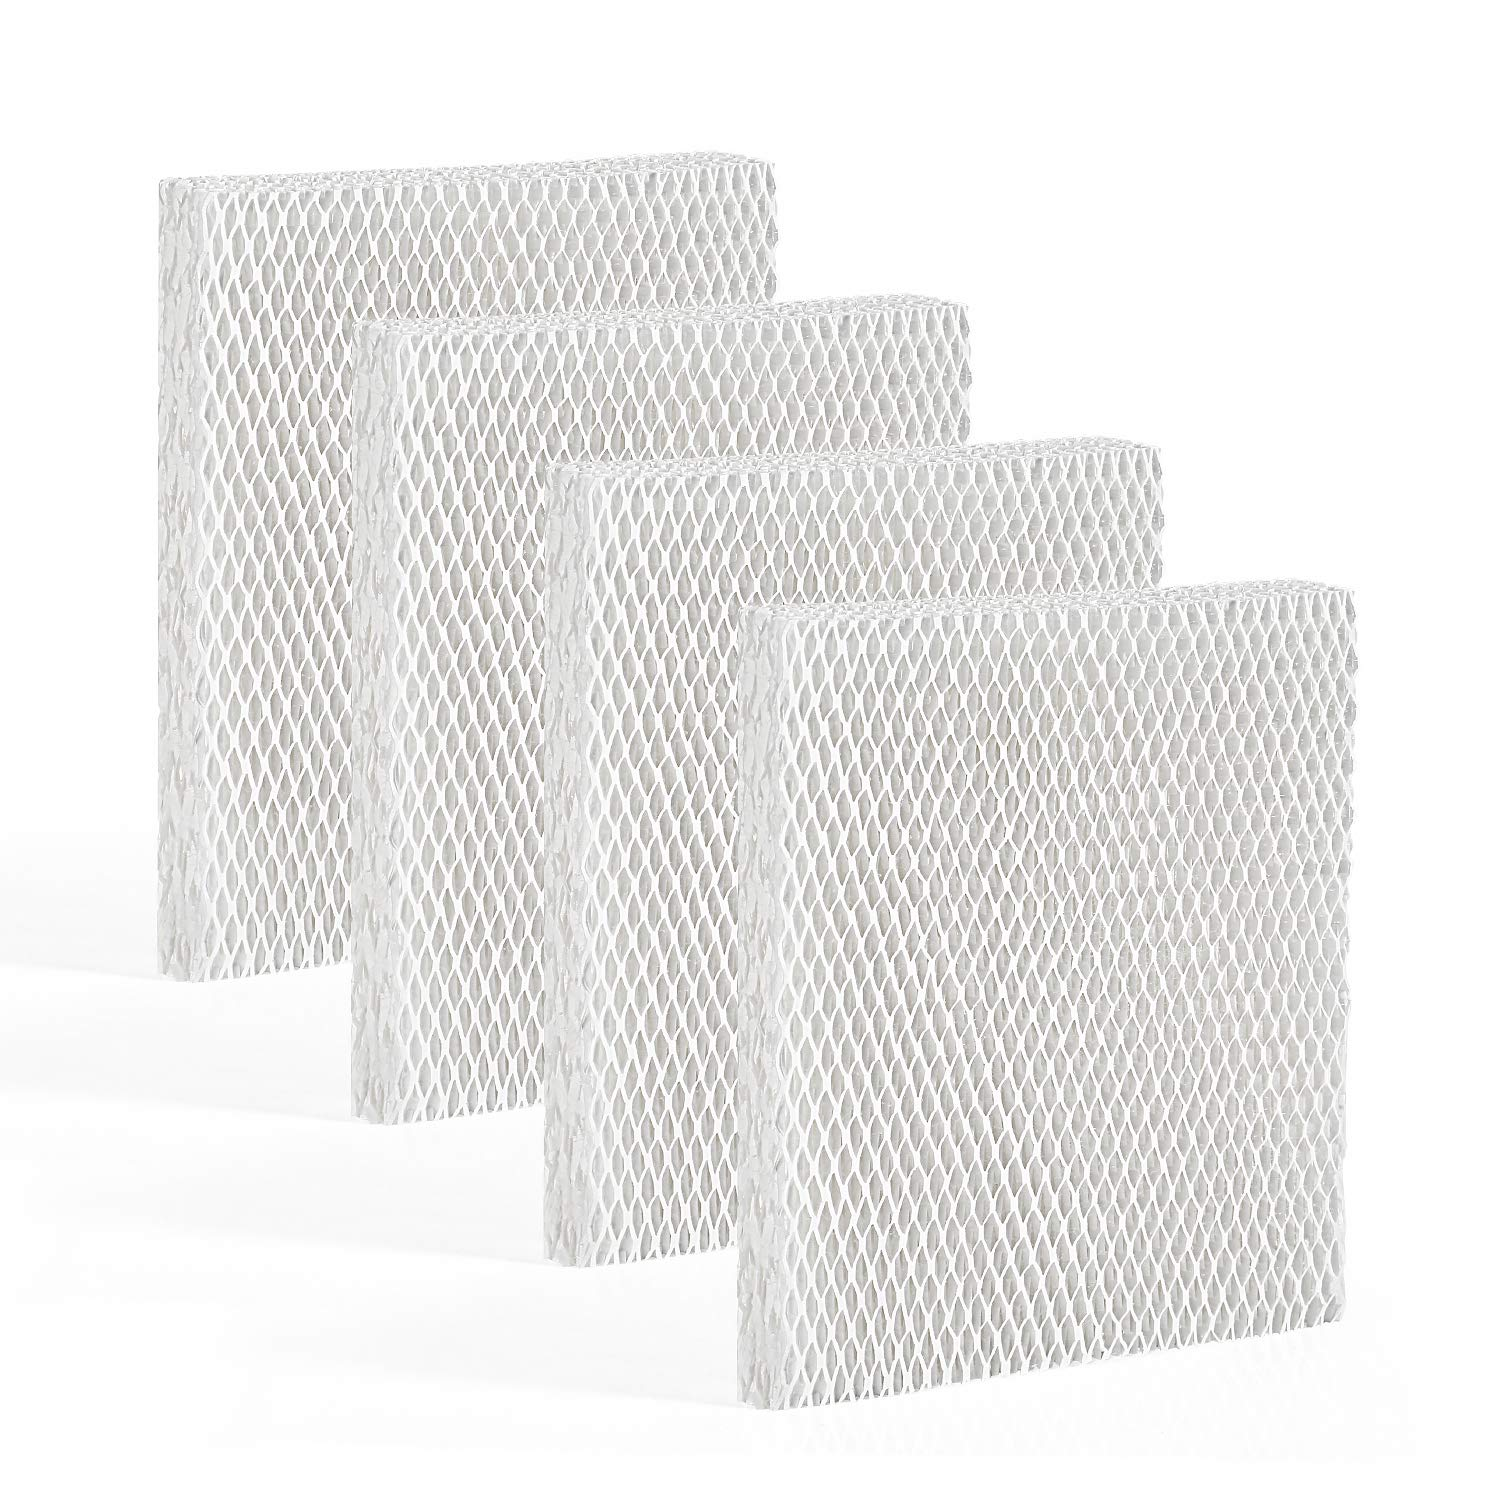 iSingo Humidifier Filter T HFT600 Humidifier Filters Compatible Honeywell Humidifier Hev615 Hev620 (4 Pack) by iSingo